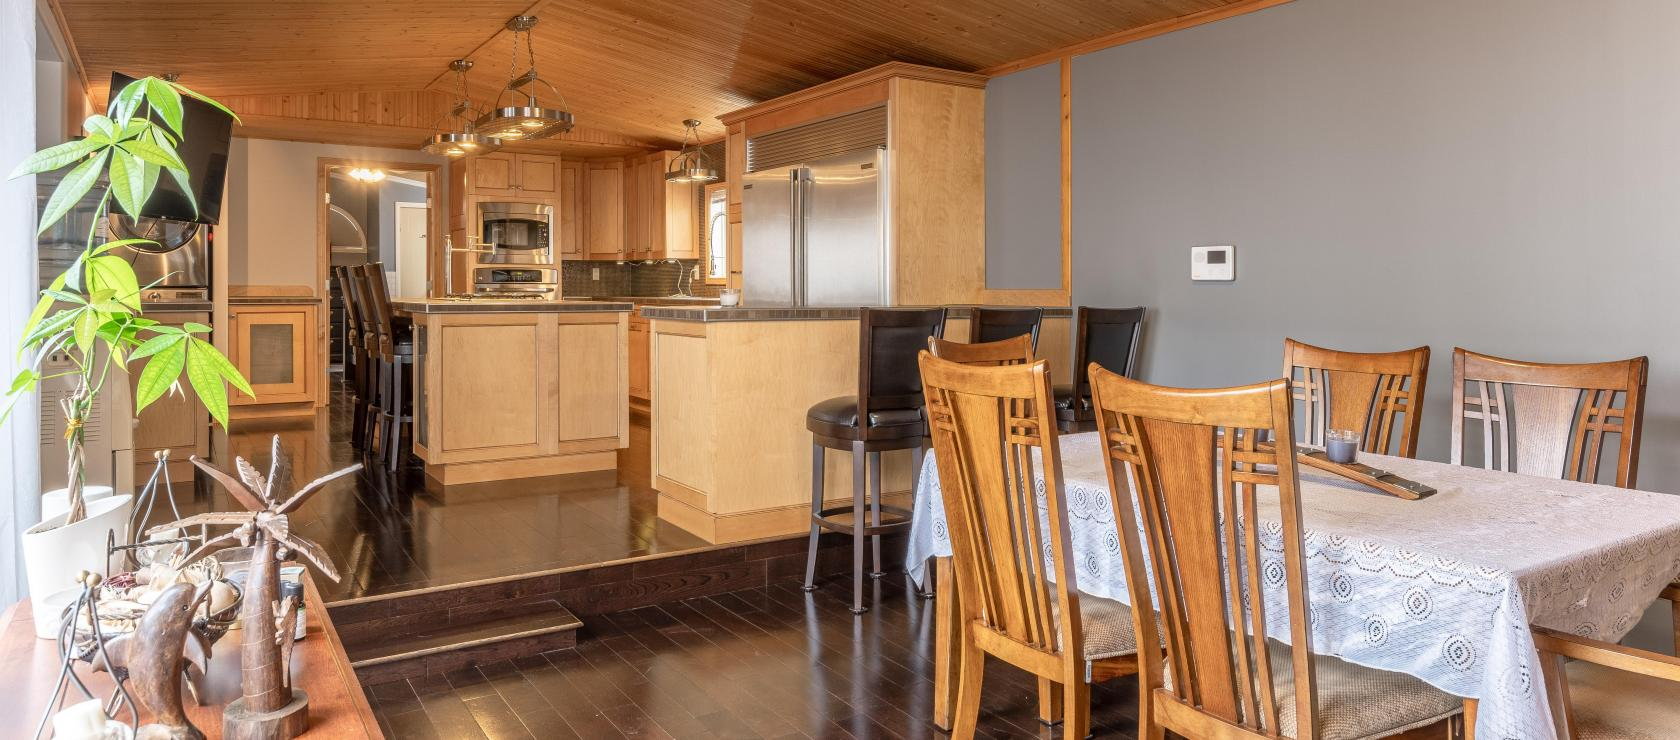 242 Borden Drive, Range Lake, Yellowknife 2